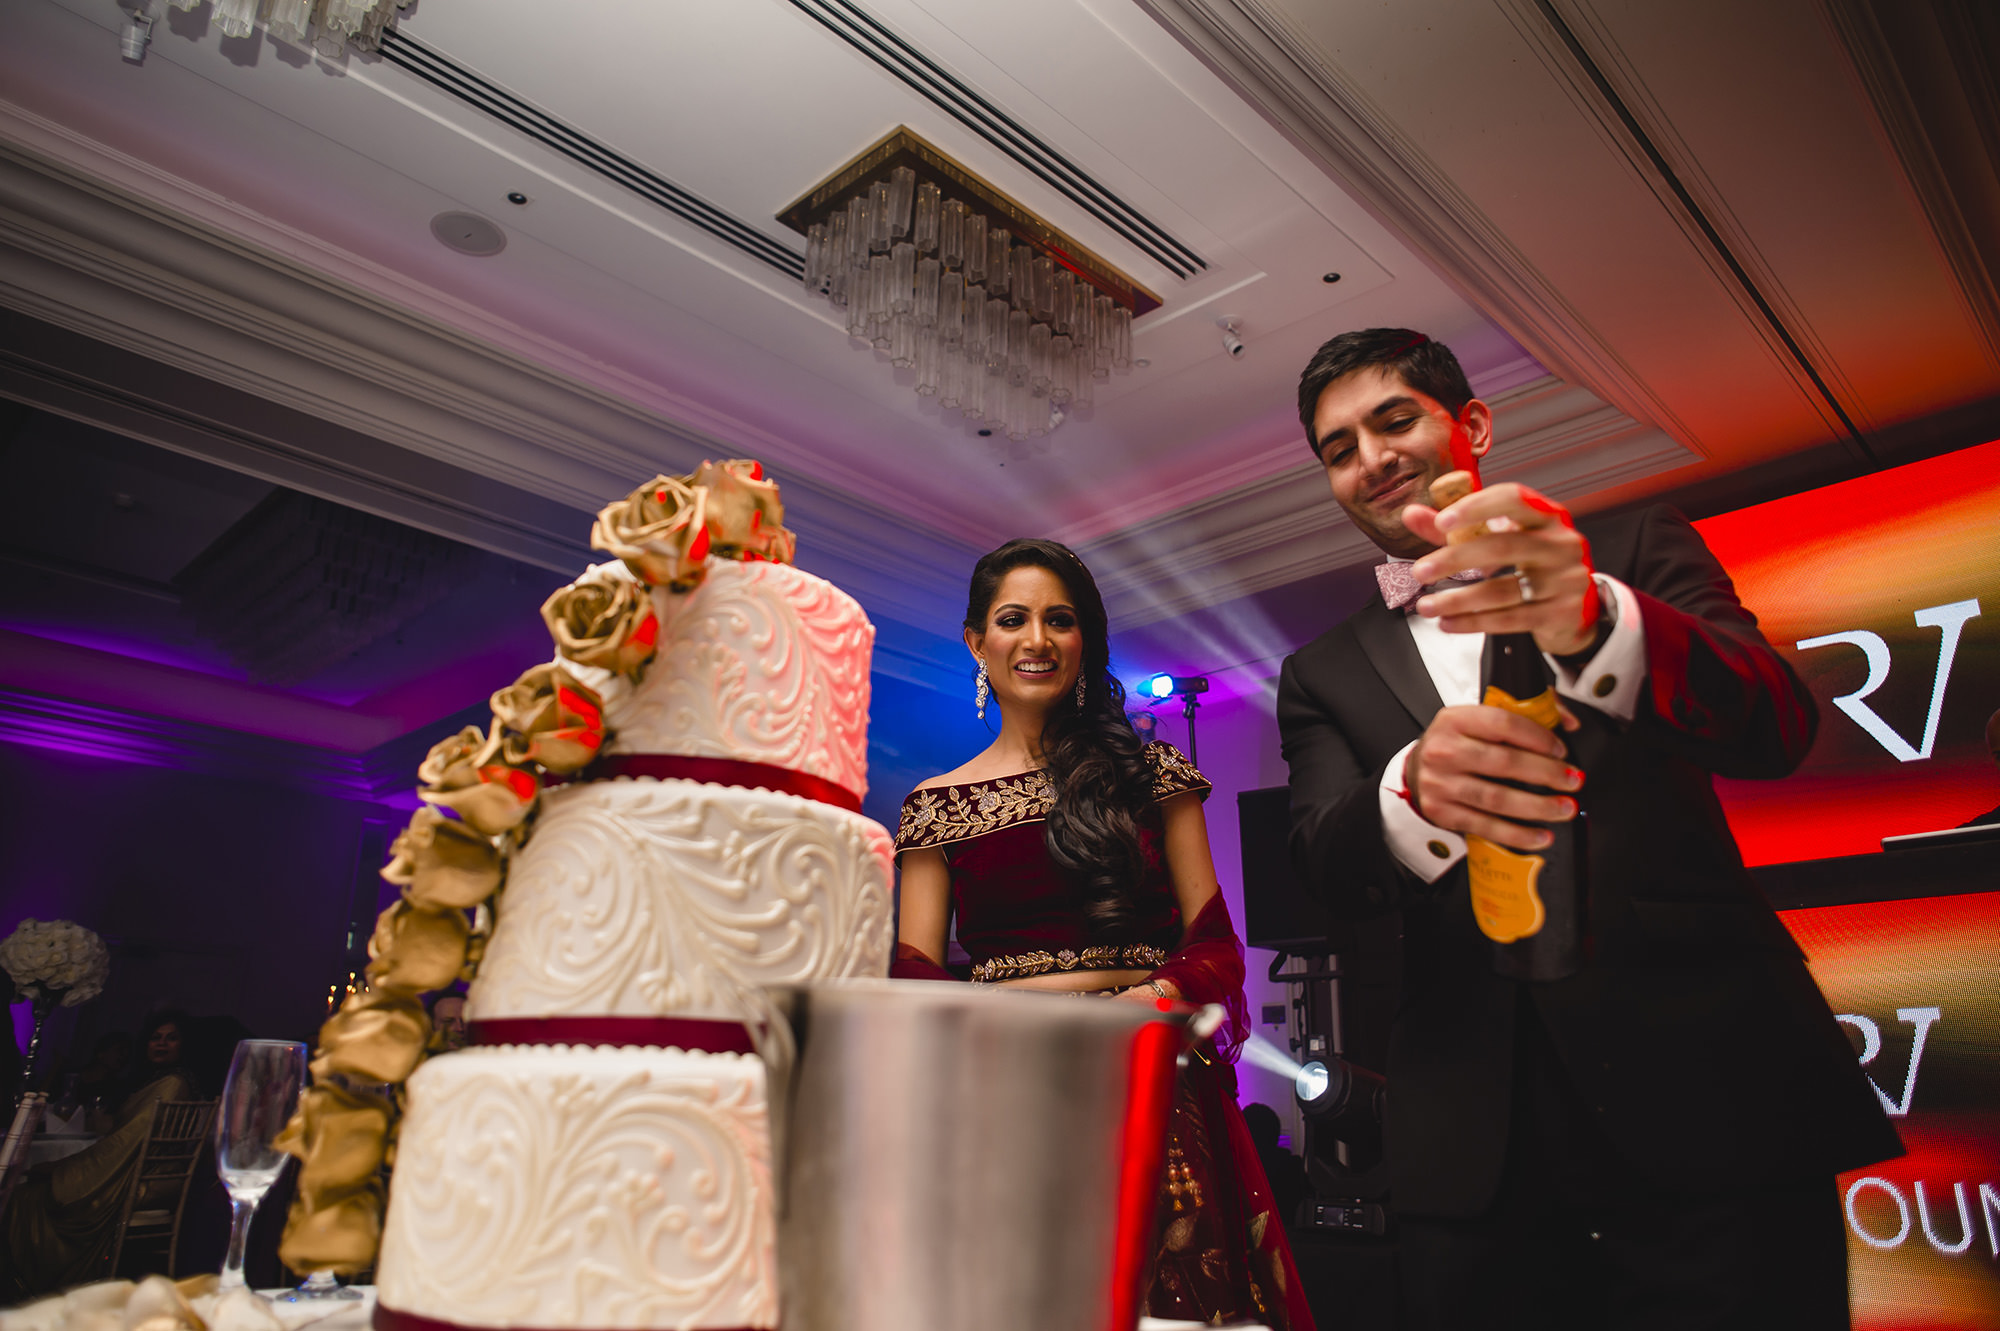 groom popping champagne after cutting wedding cake with bride